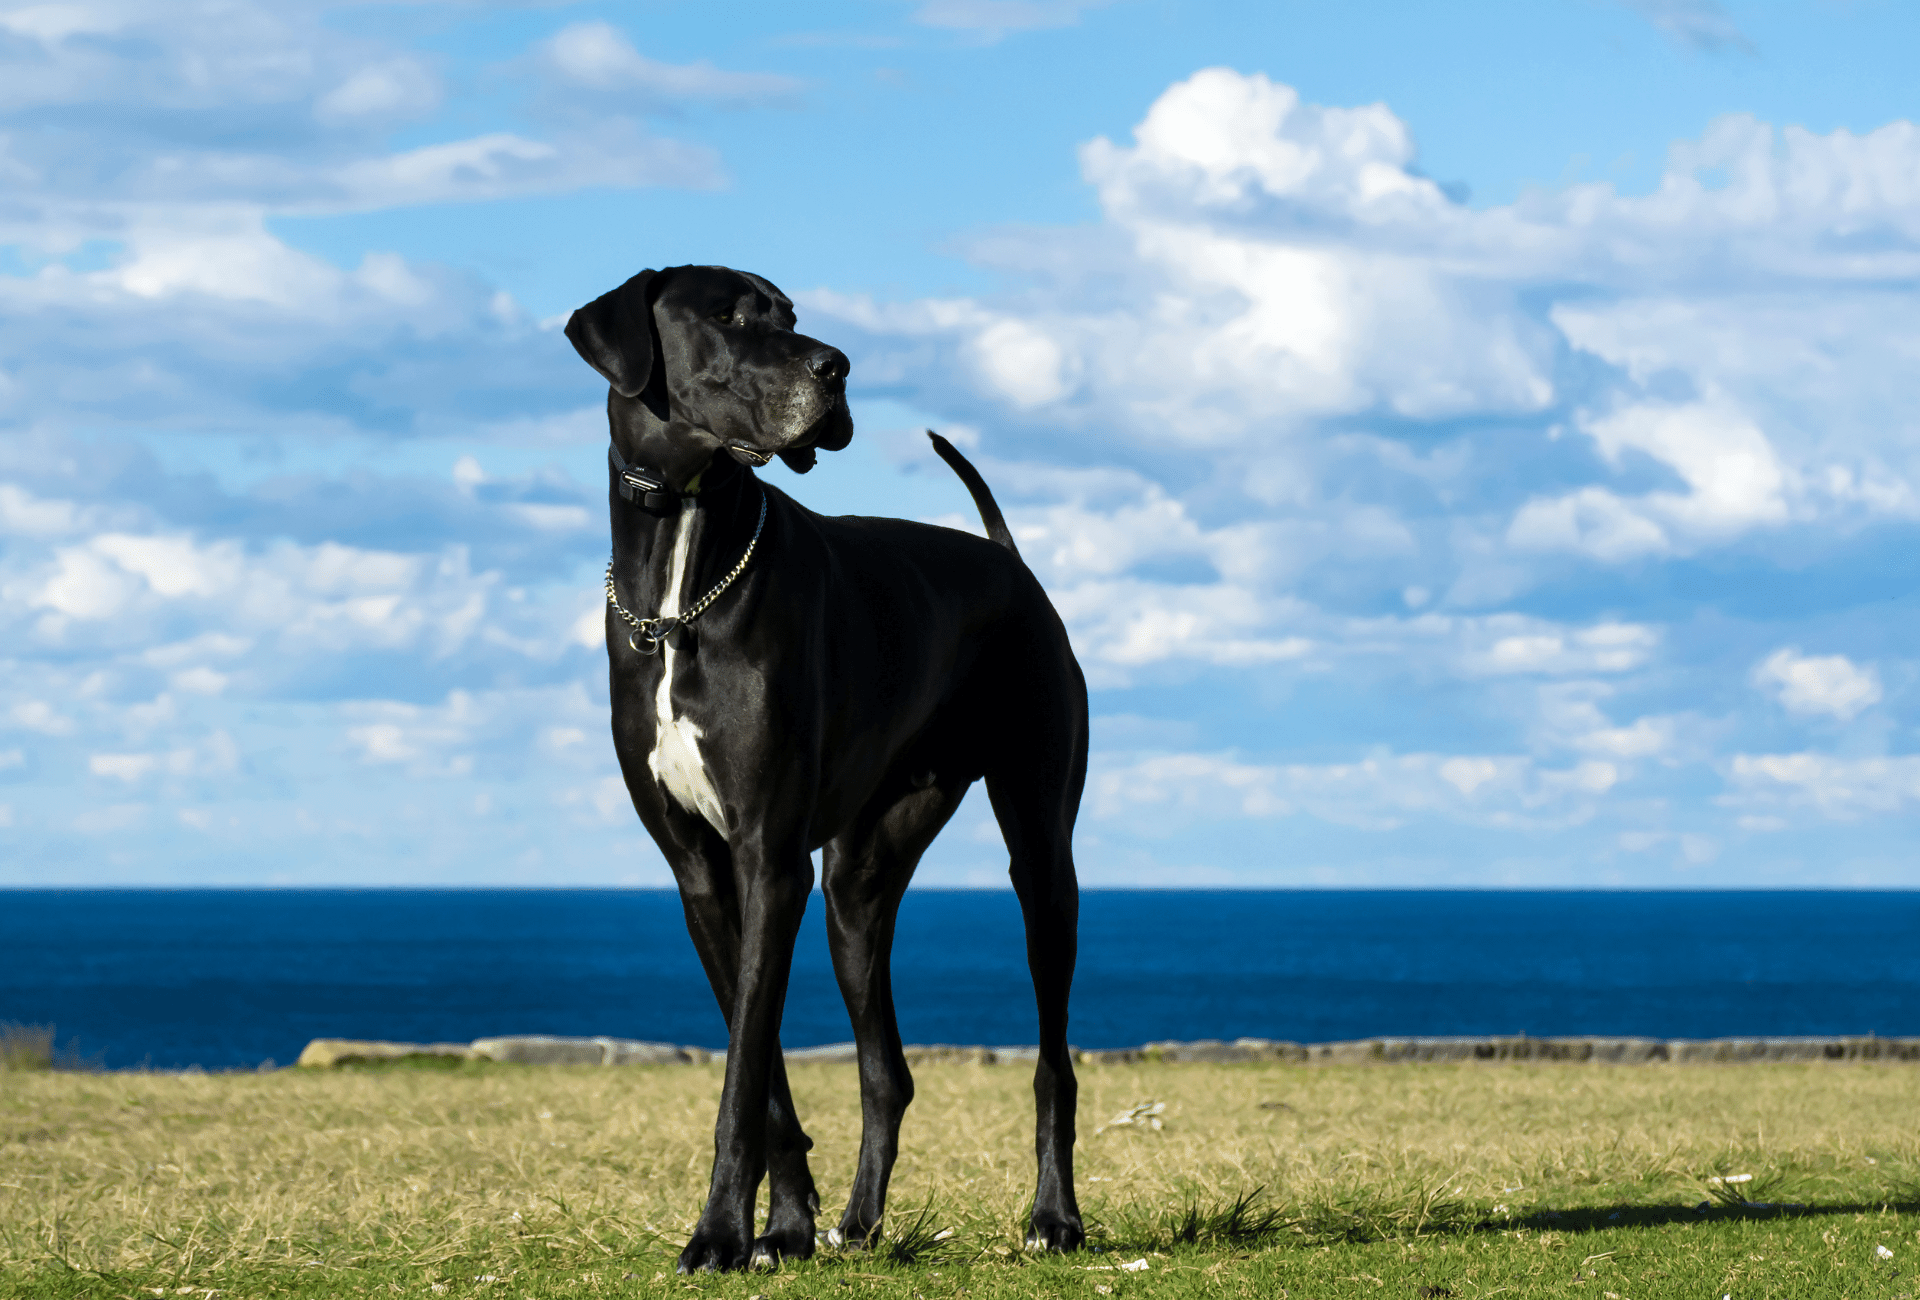 Tall black Great Dane standing under clear sky.